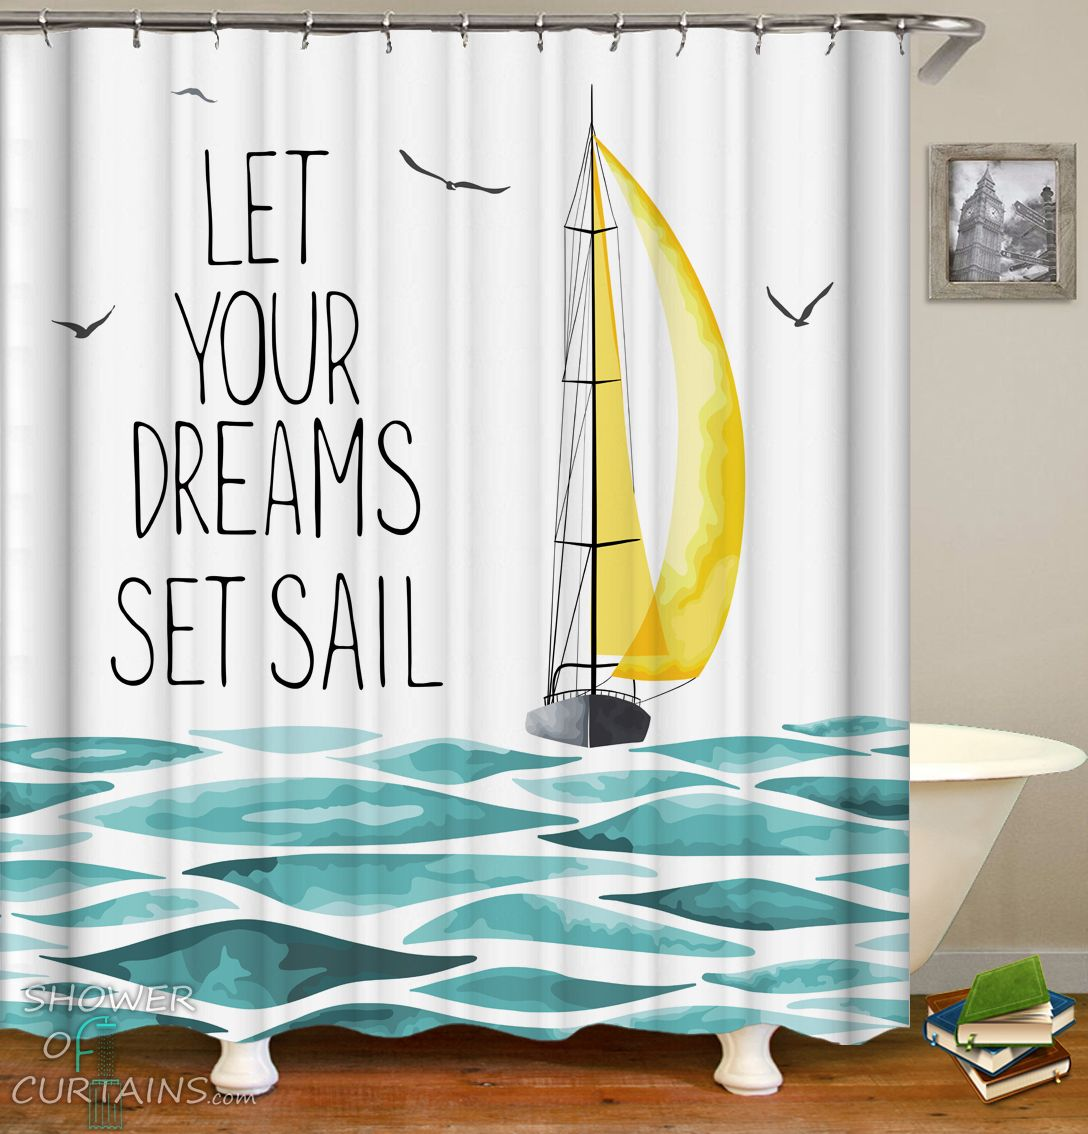 Let Your Dreams Set Sail Shower Curtain Hxtc0706 In 2020